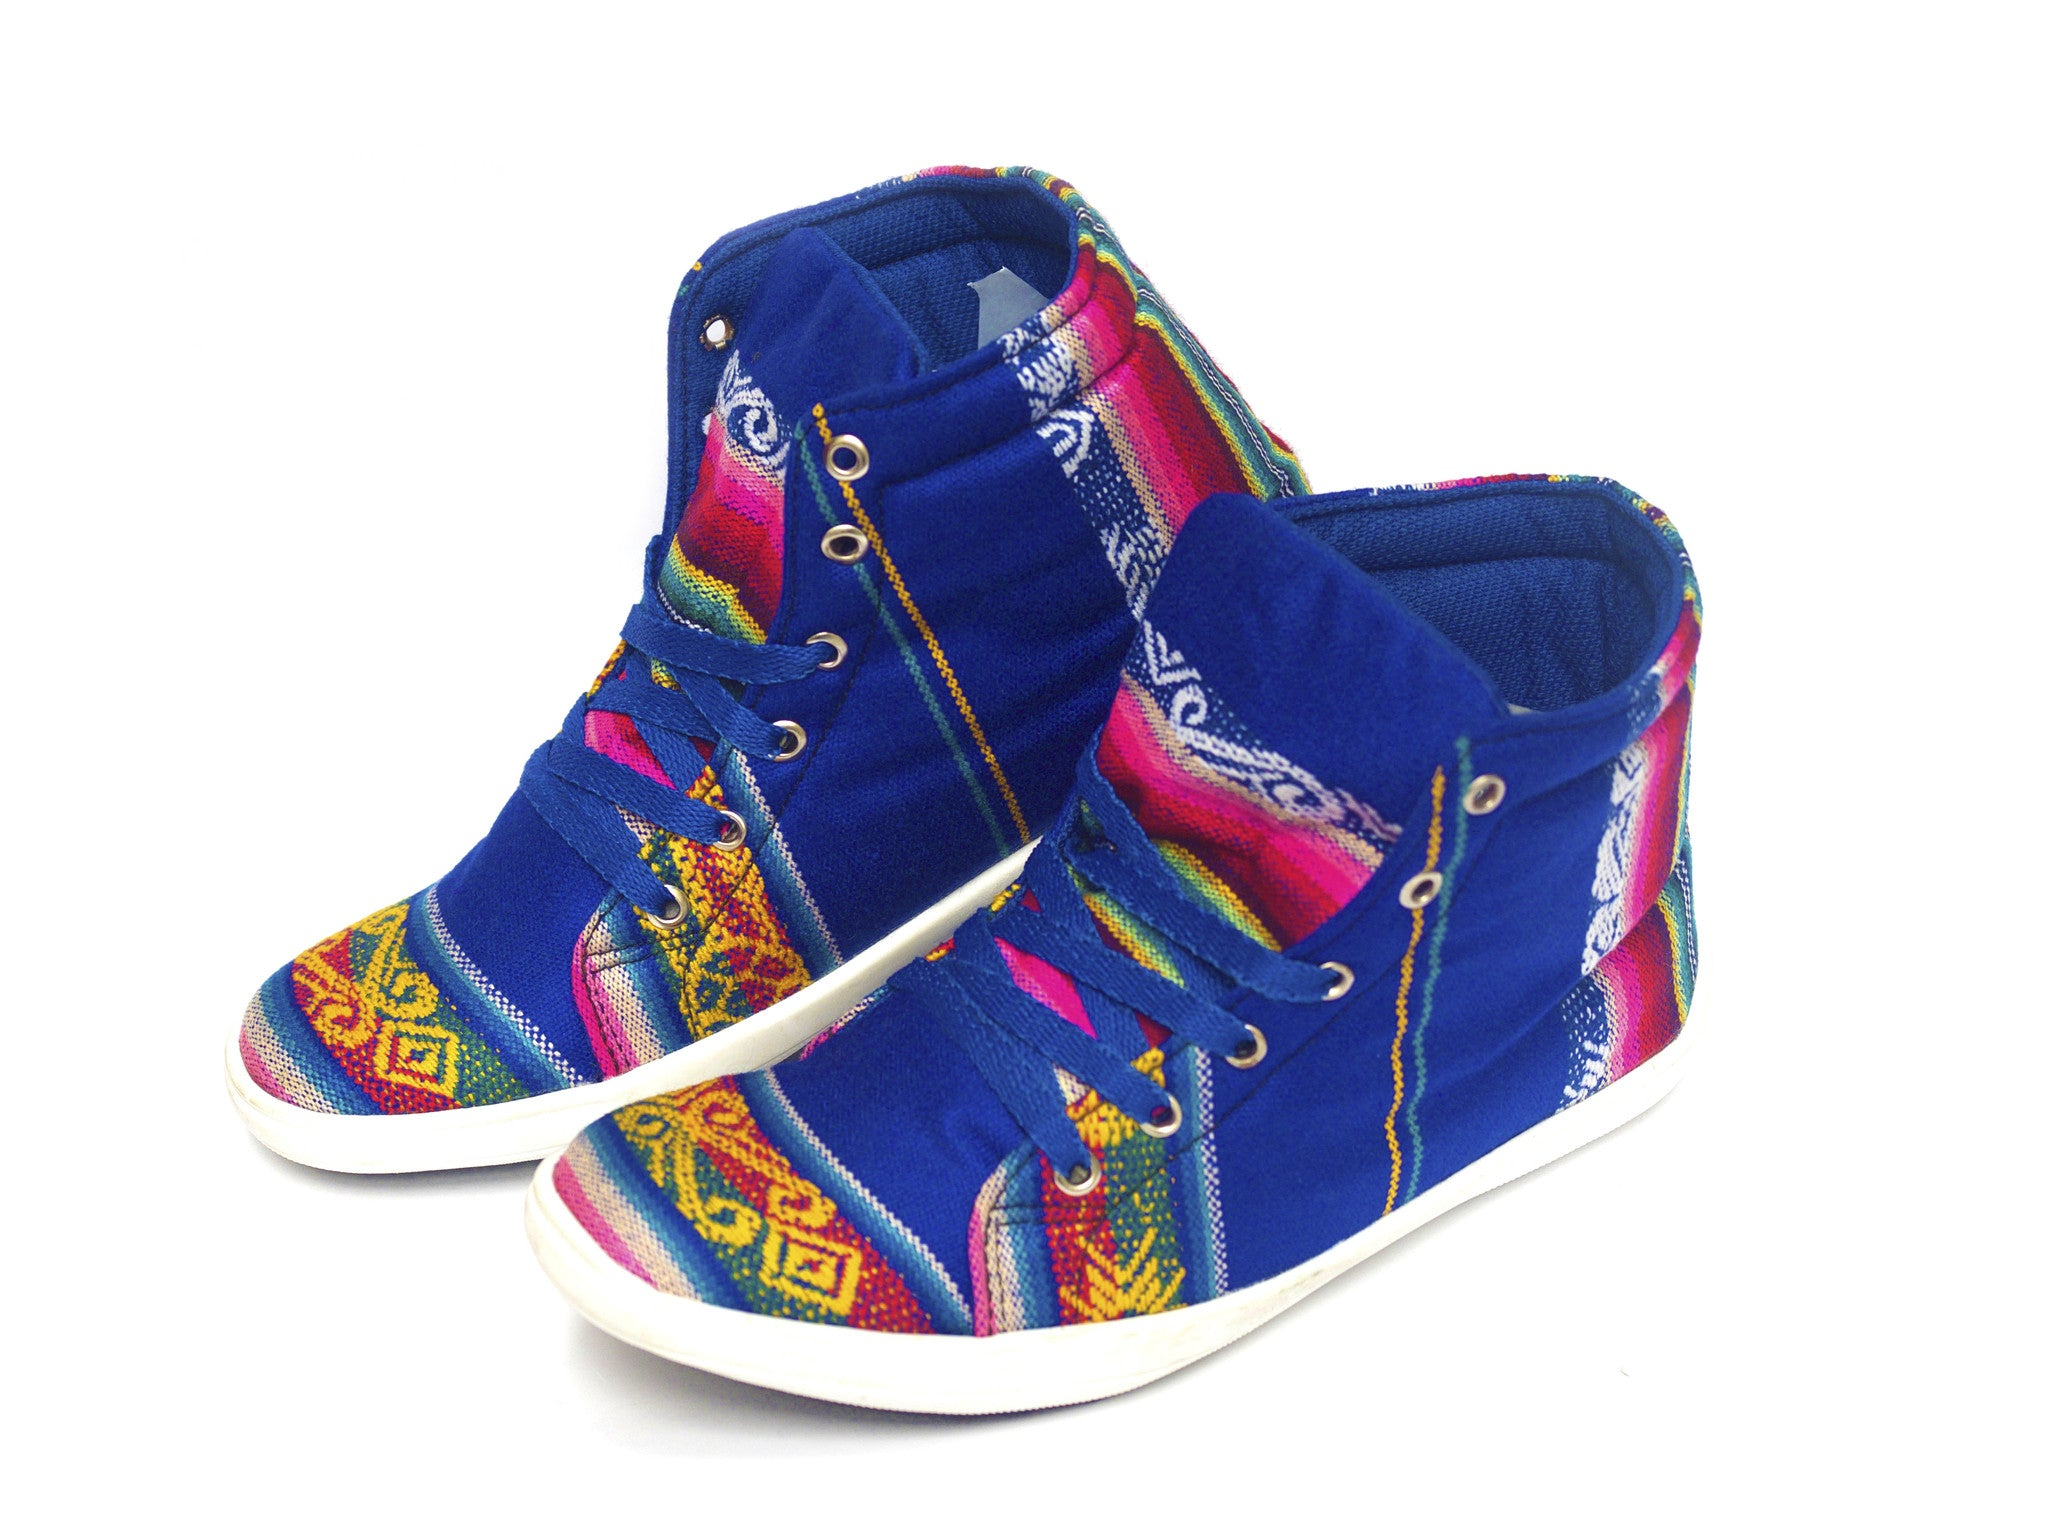 WOVEN HIGH TOP CHAKI SNEAKERS - BLUE